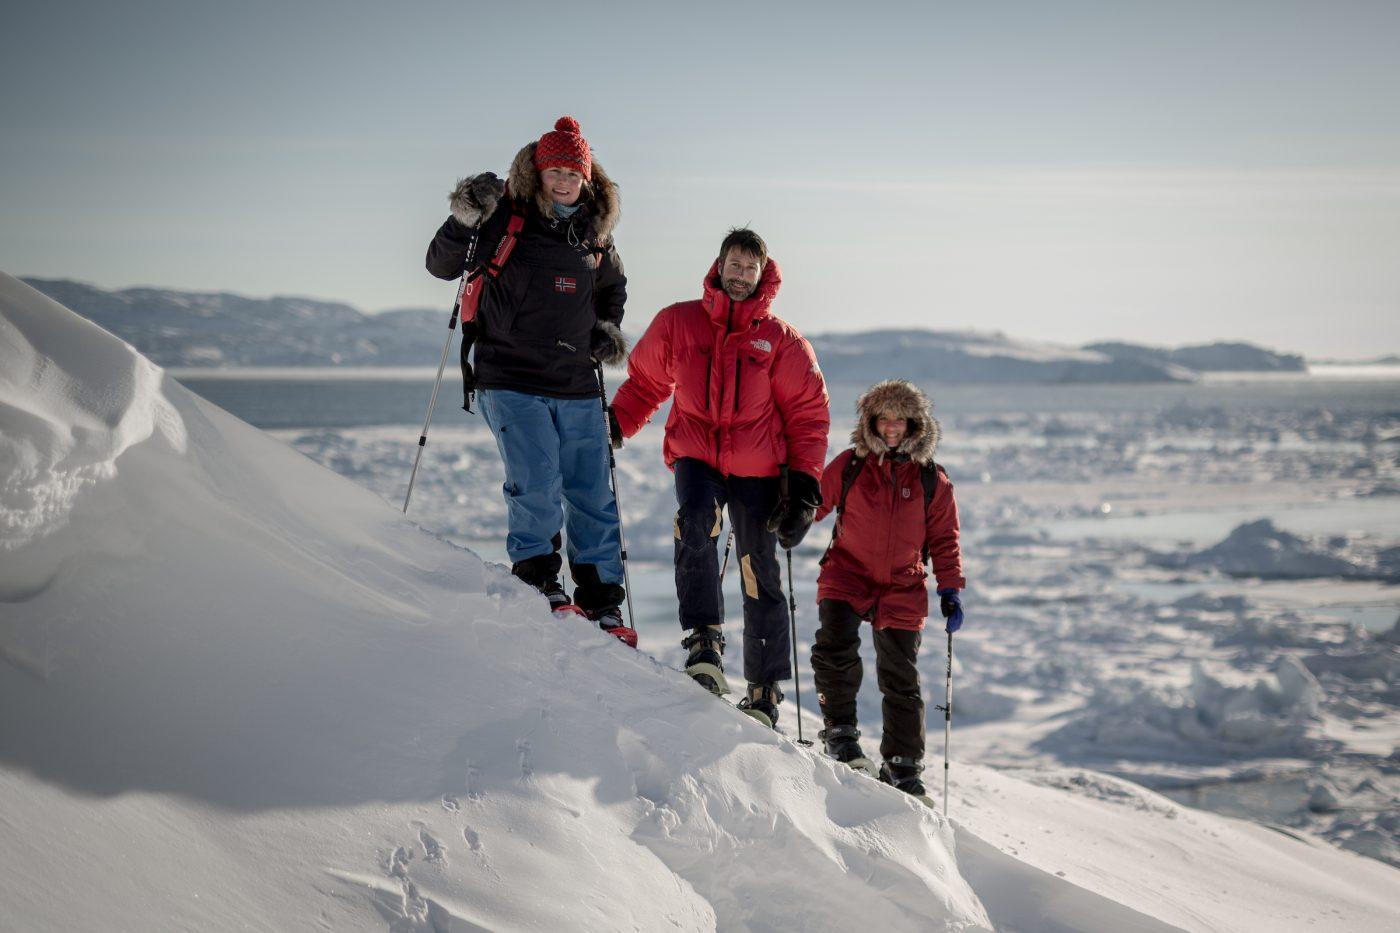 Three snowshoers on a PGI Greenland snowshoe trip near Ilulissat in Greenland. By Mads Pihl